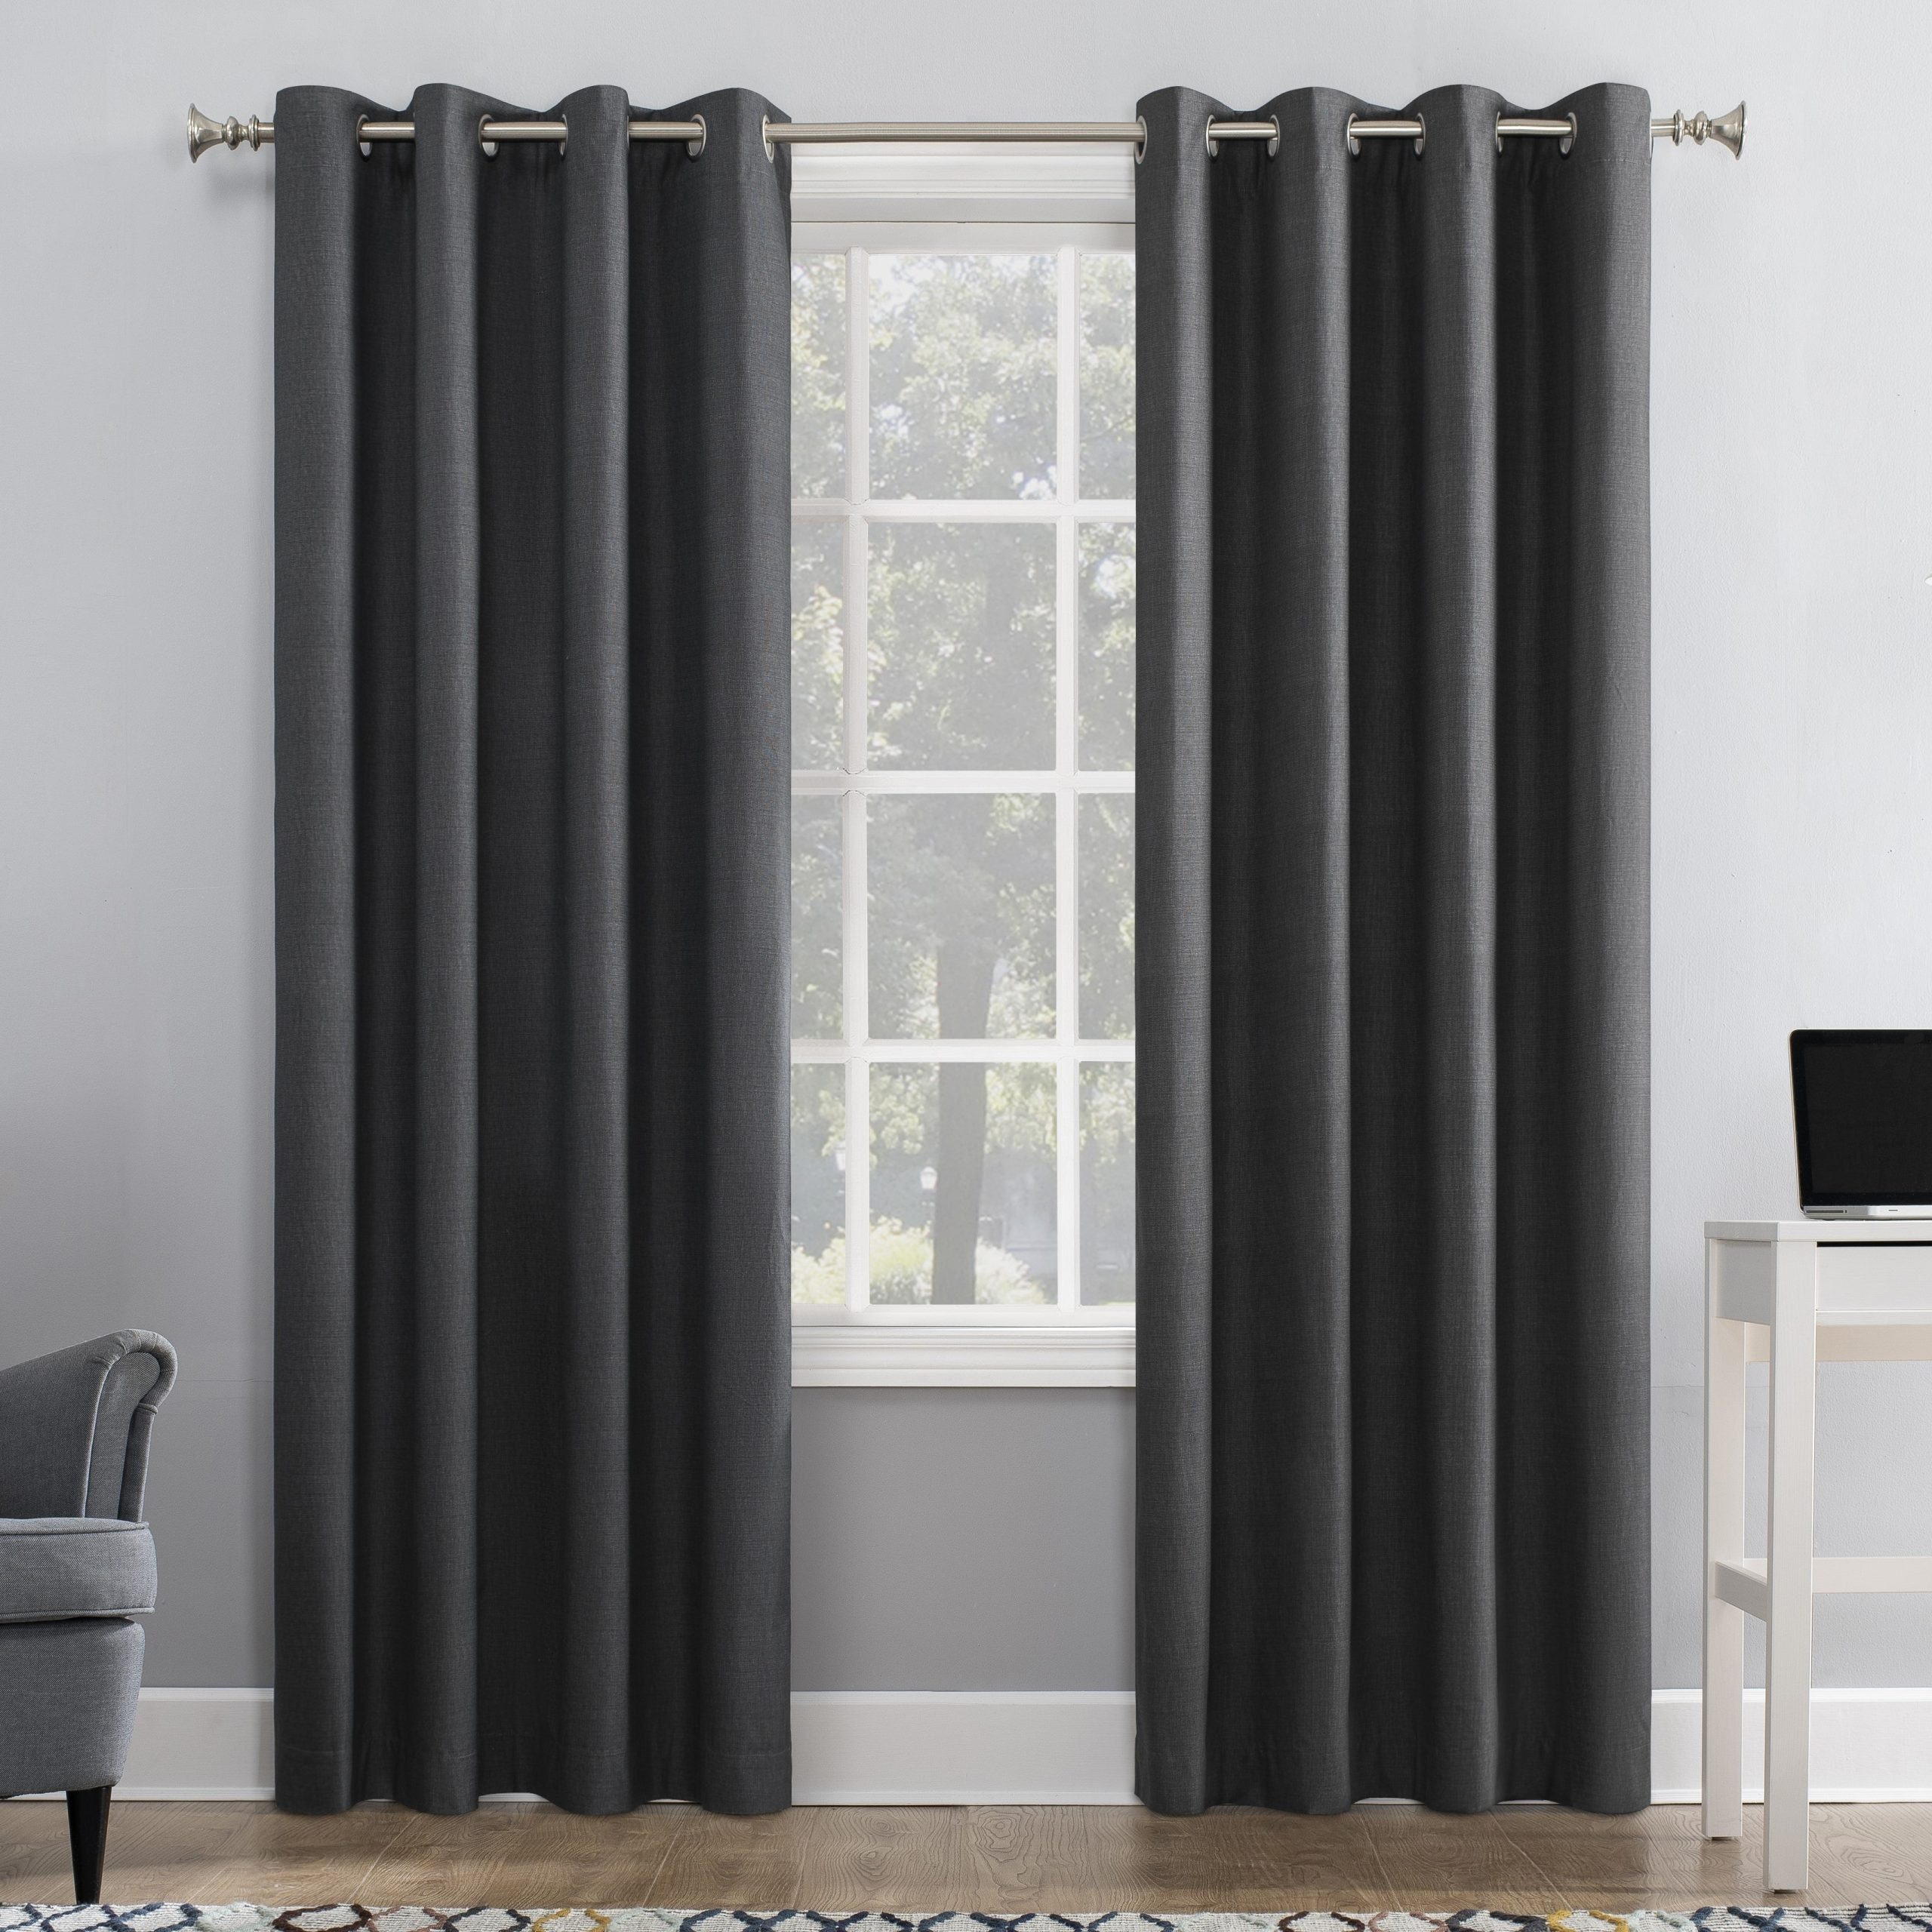 [%sun Zero Duran Thermal Insulated 100% Blackout Grommet Curtain Panel Pertaining To 2021 Cyrus Thermal Blackout Back Tab Curtain Panels|cyrus Thermal Blackout Back Tab Curtain Panels Regarding Popular Sun Zero Duran Thermal Insulated 100% Blackout Grommet Curtain Panel|best And Newest Cyrus Thermal Blackout Back Tab Curtain Panels In Sun Zero Duran Thermal Insulated 100% Blackout Grommet Curtain Panel|favorite Sun Zero Duran Thermal Insulated 100% Blackout Grommet Curtain Panel With Regard To Cyrus Thermal Blackout Back Tab Curtain Panels%] (View 4 of 20)